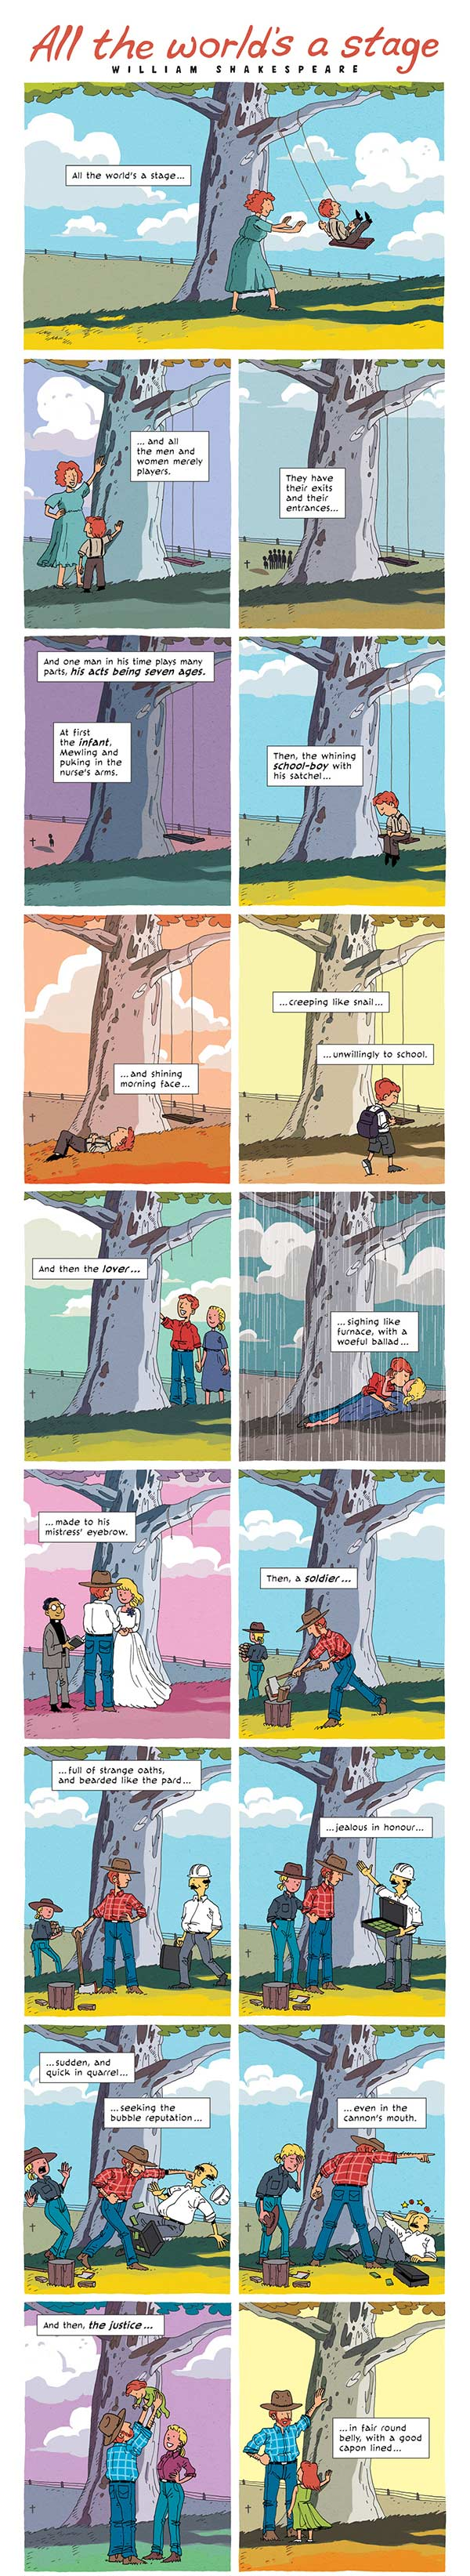 "Zen Pencils: Gavin Aung Than Presents ""All the World's a Stage"" by William Shakespeare"